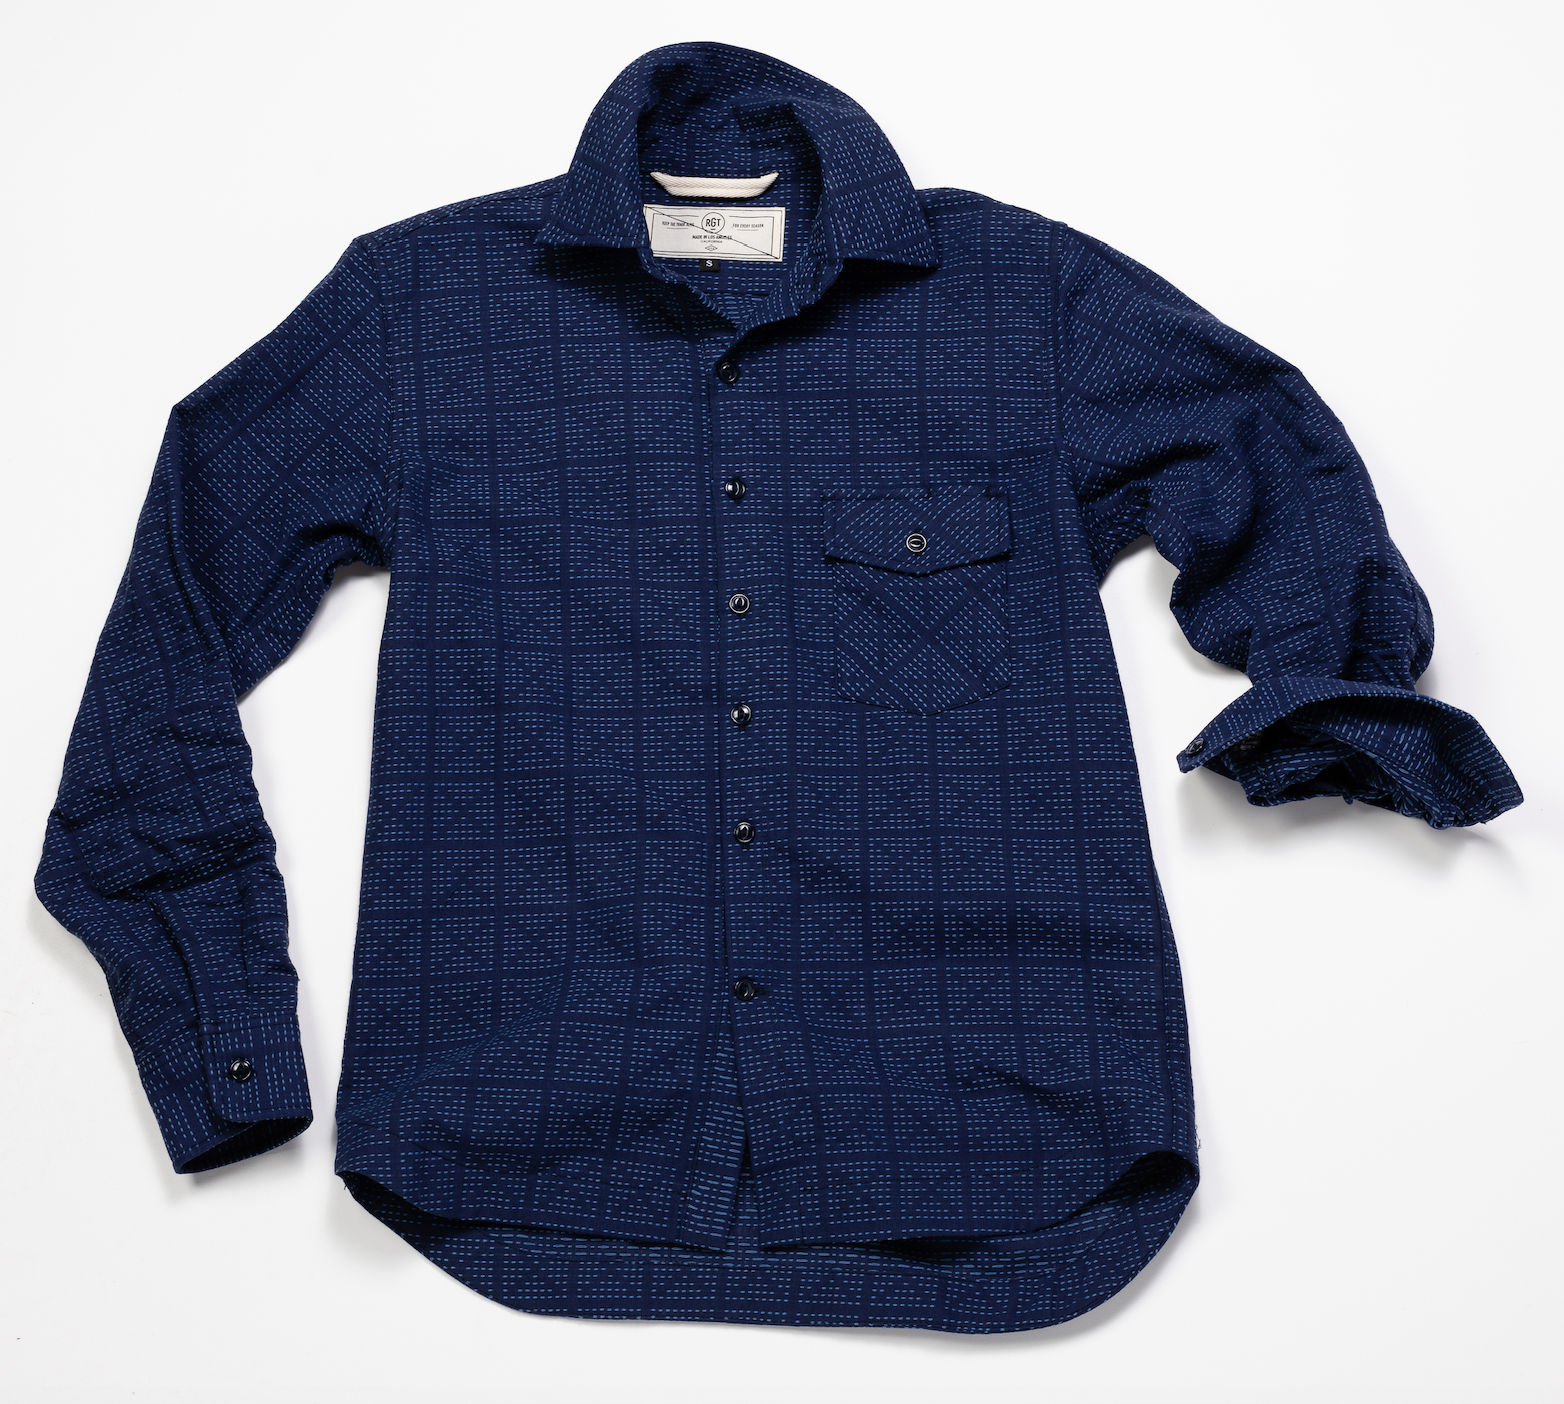 Oxford Work Shirt X Stitch Sashiko – Navy